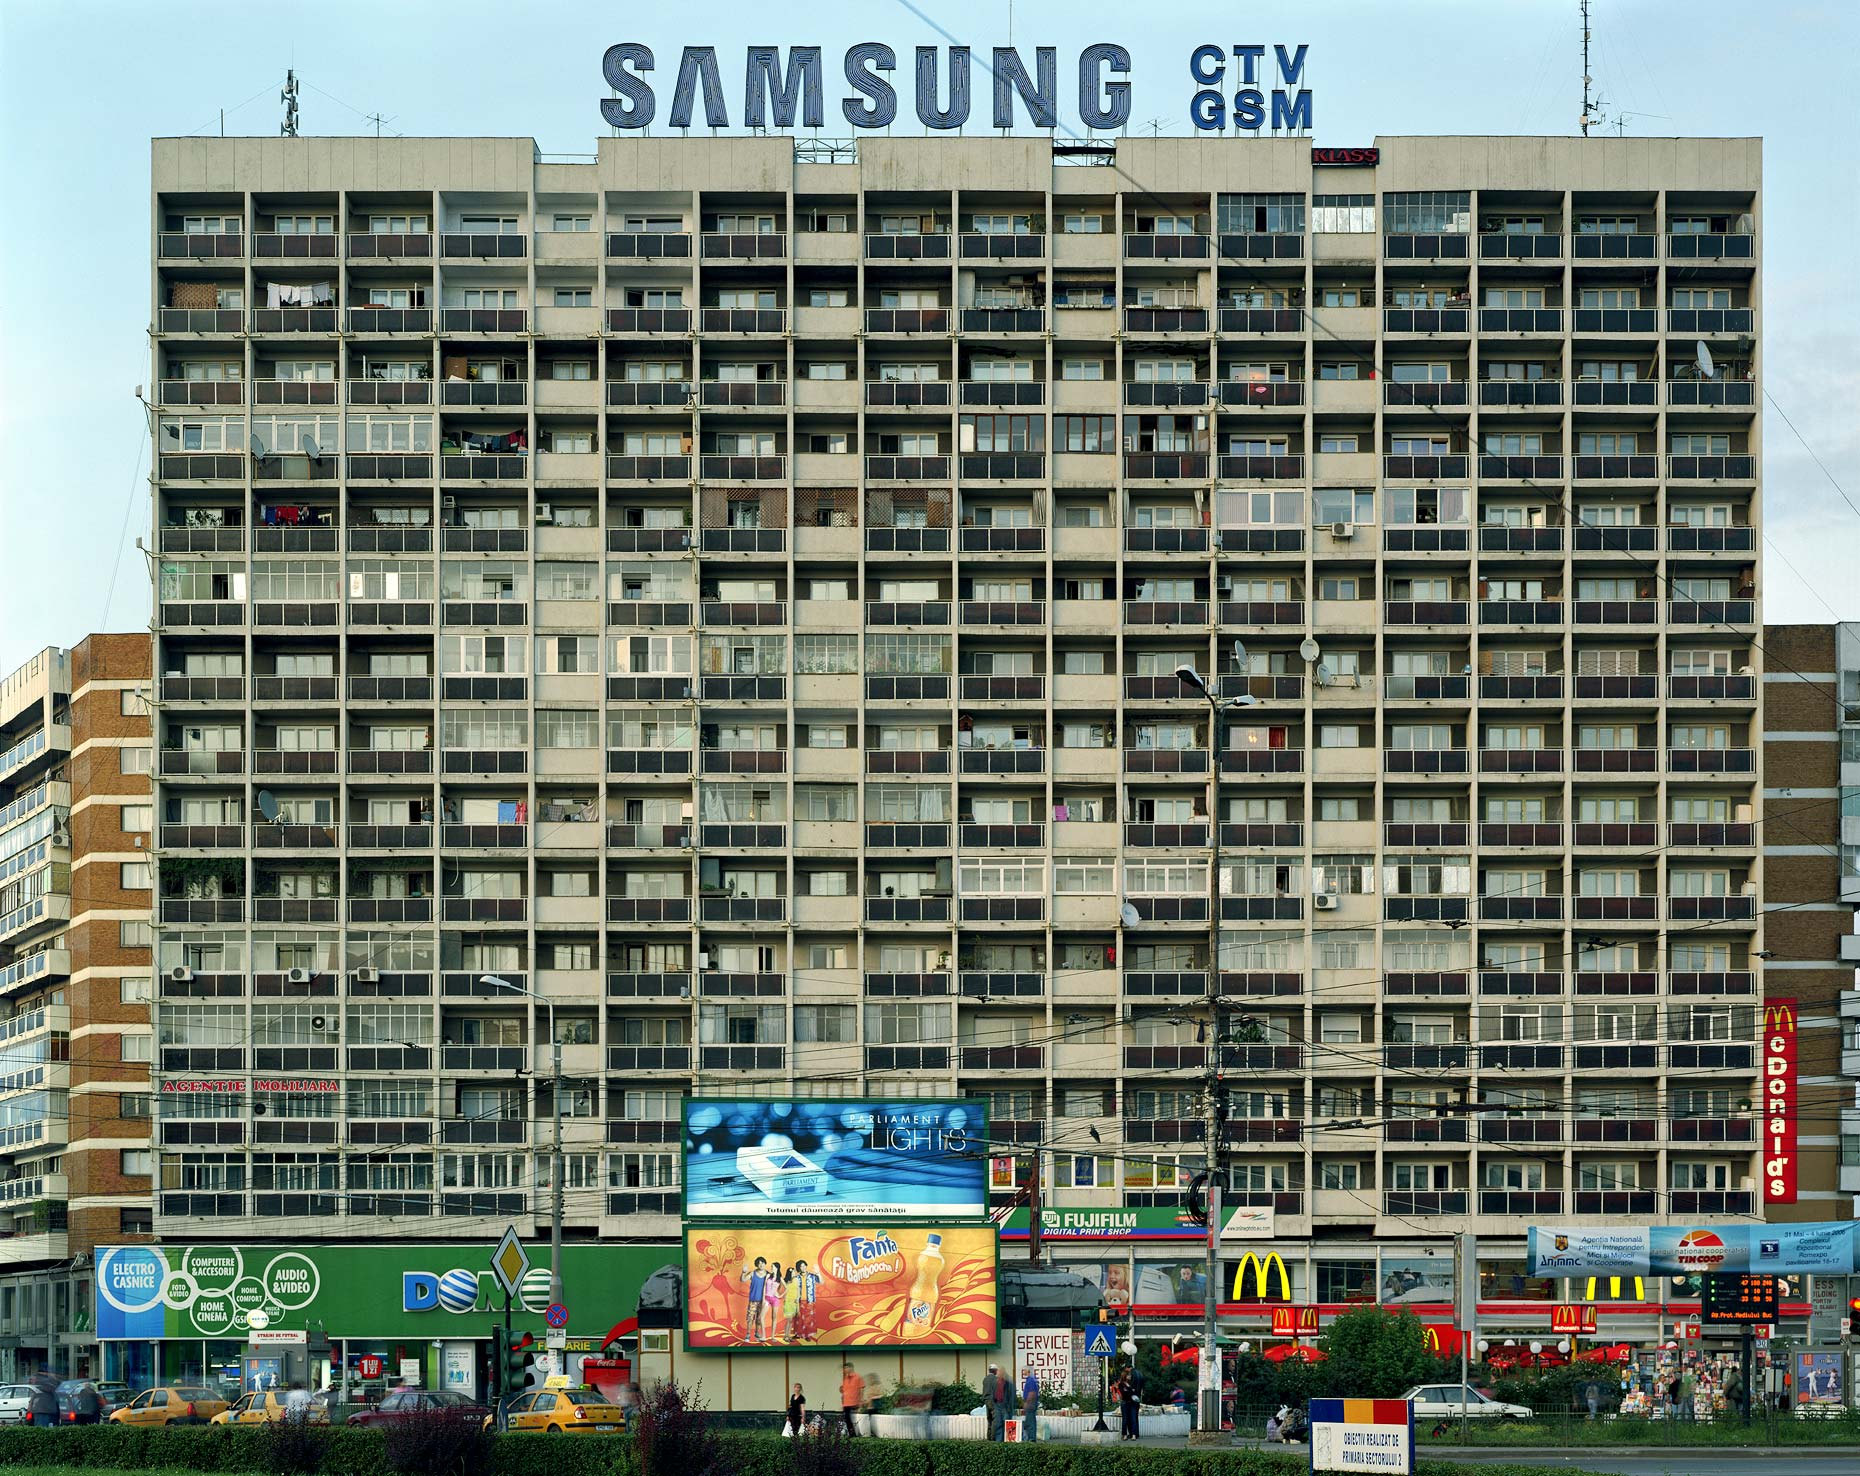 Samsung Building, Bucharest, Romania, 2006